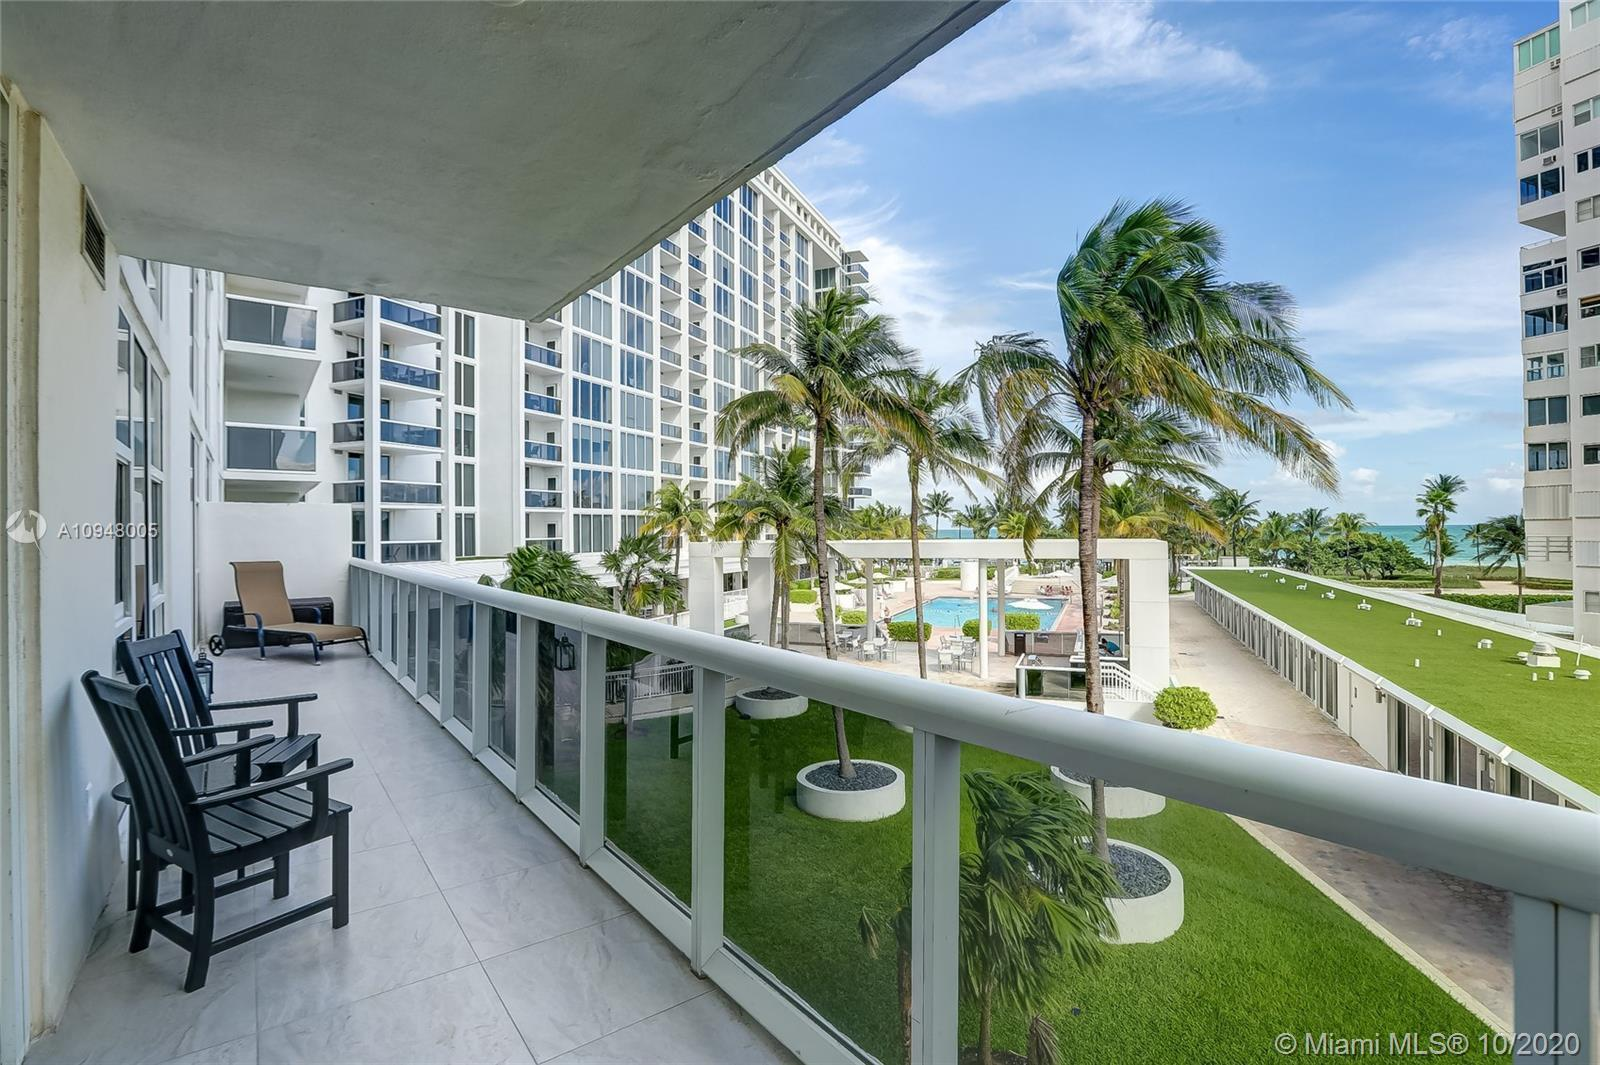 SPECTACULAR DIRECT OCEAN, BEACH, AND POOL VIEW WITH OVER-SIZED BALCONY. THIS UNIT HAS THE LARGEST BA